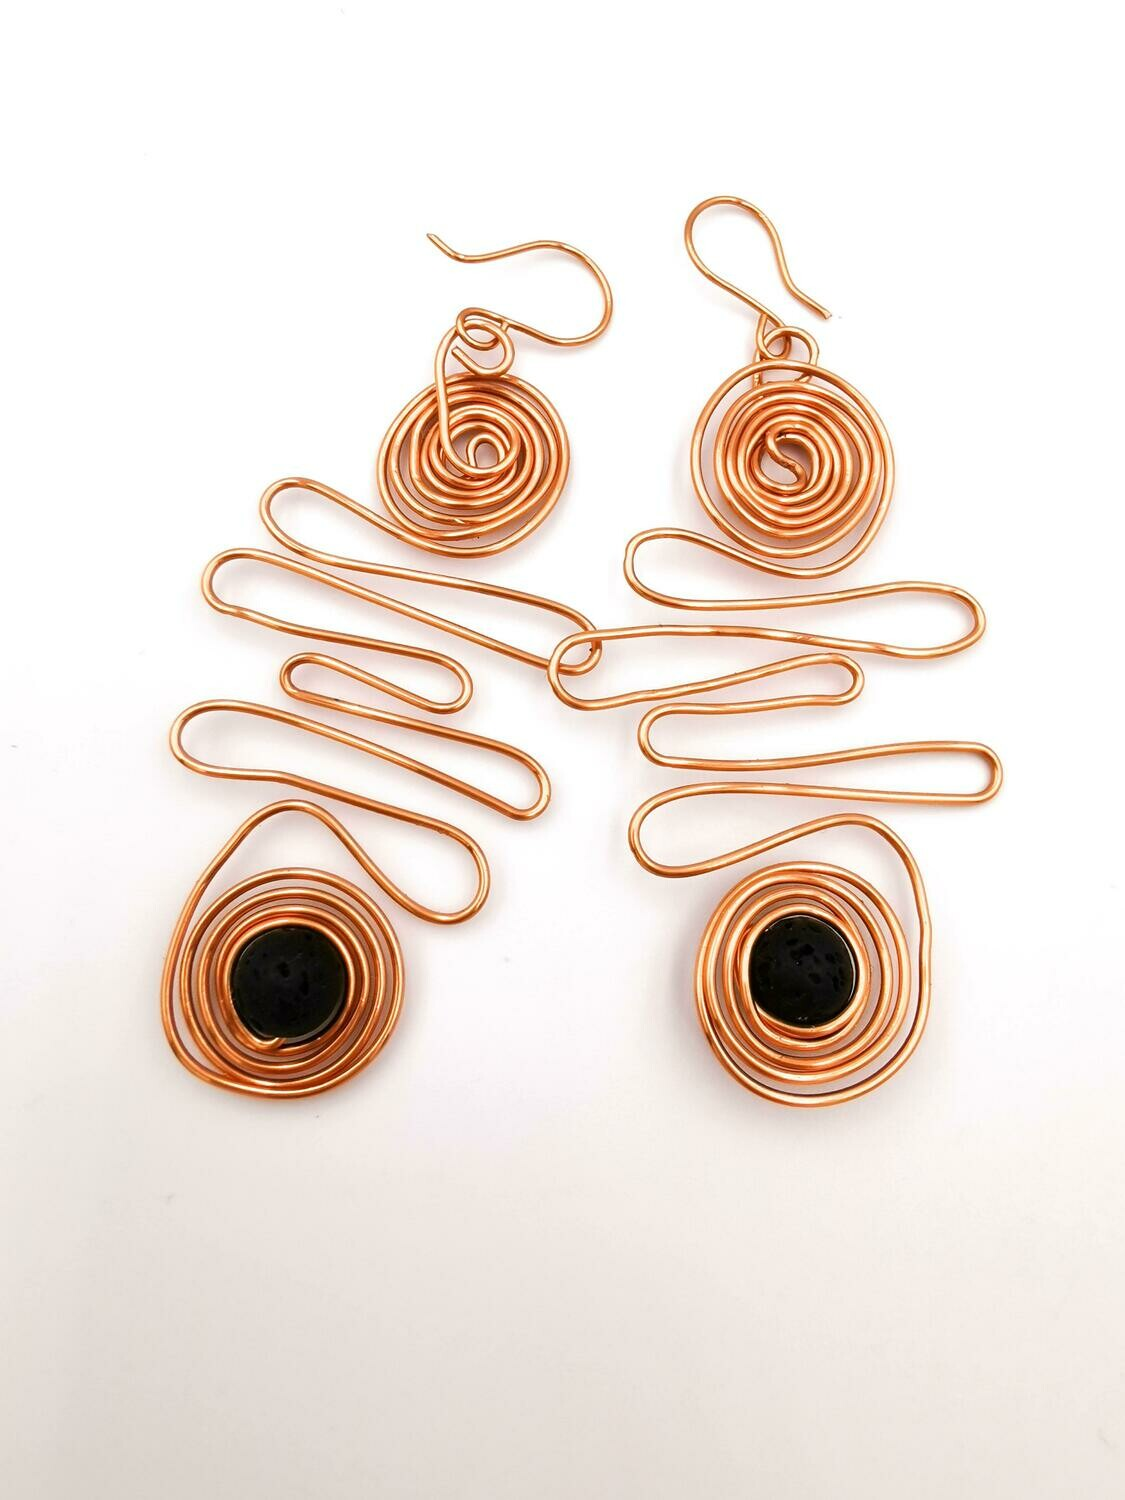 Black Bead, Gold Scribble and Coiled Earrings